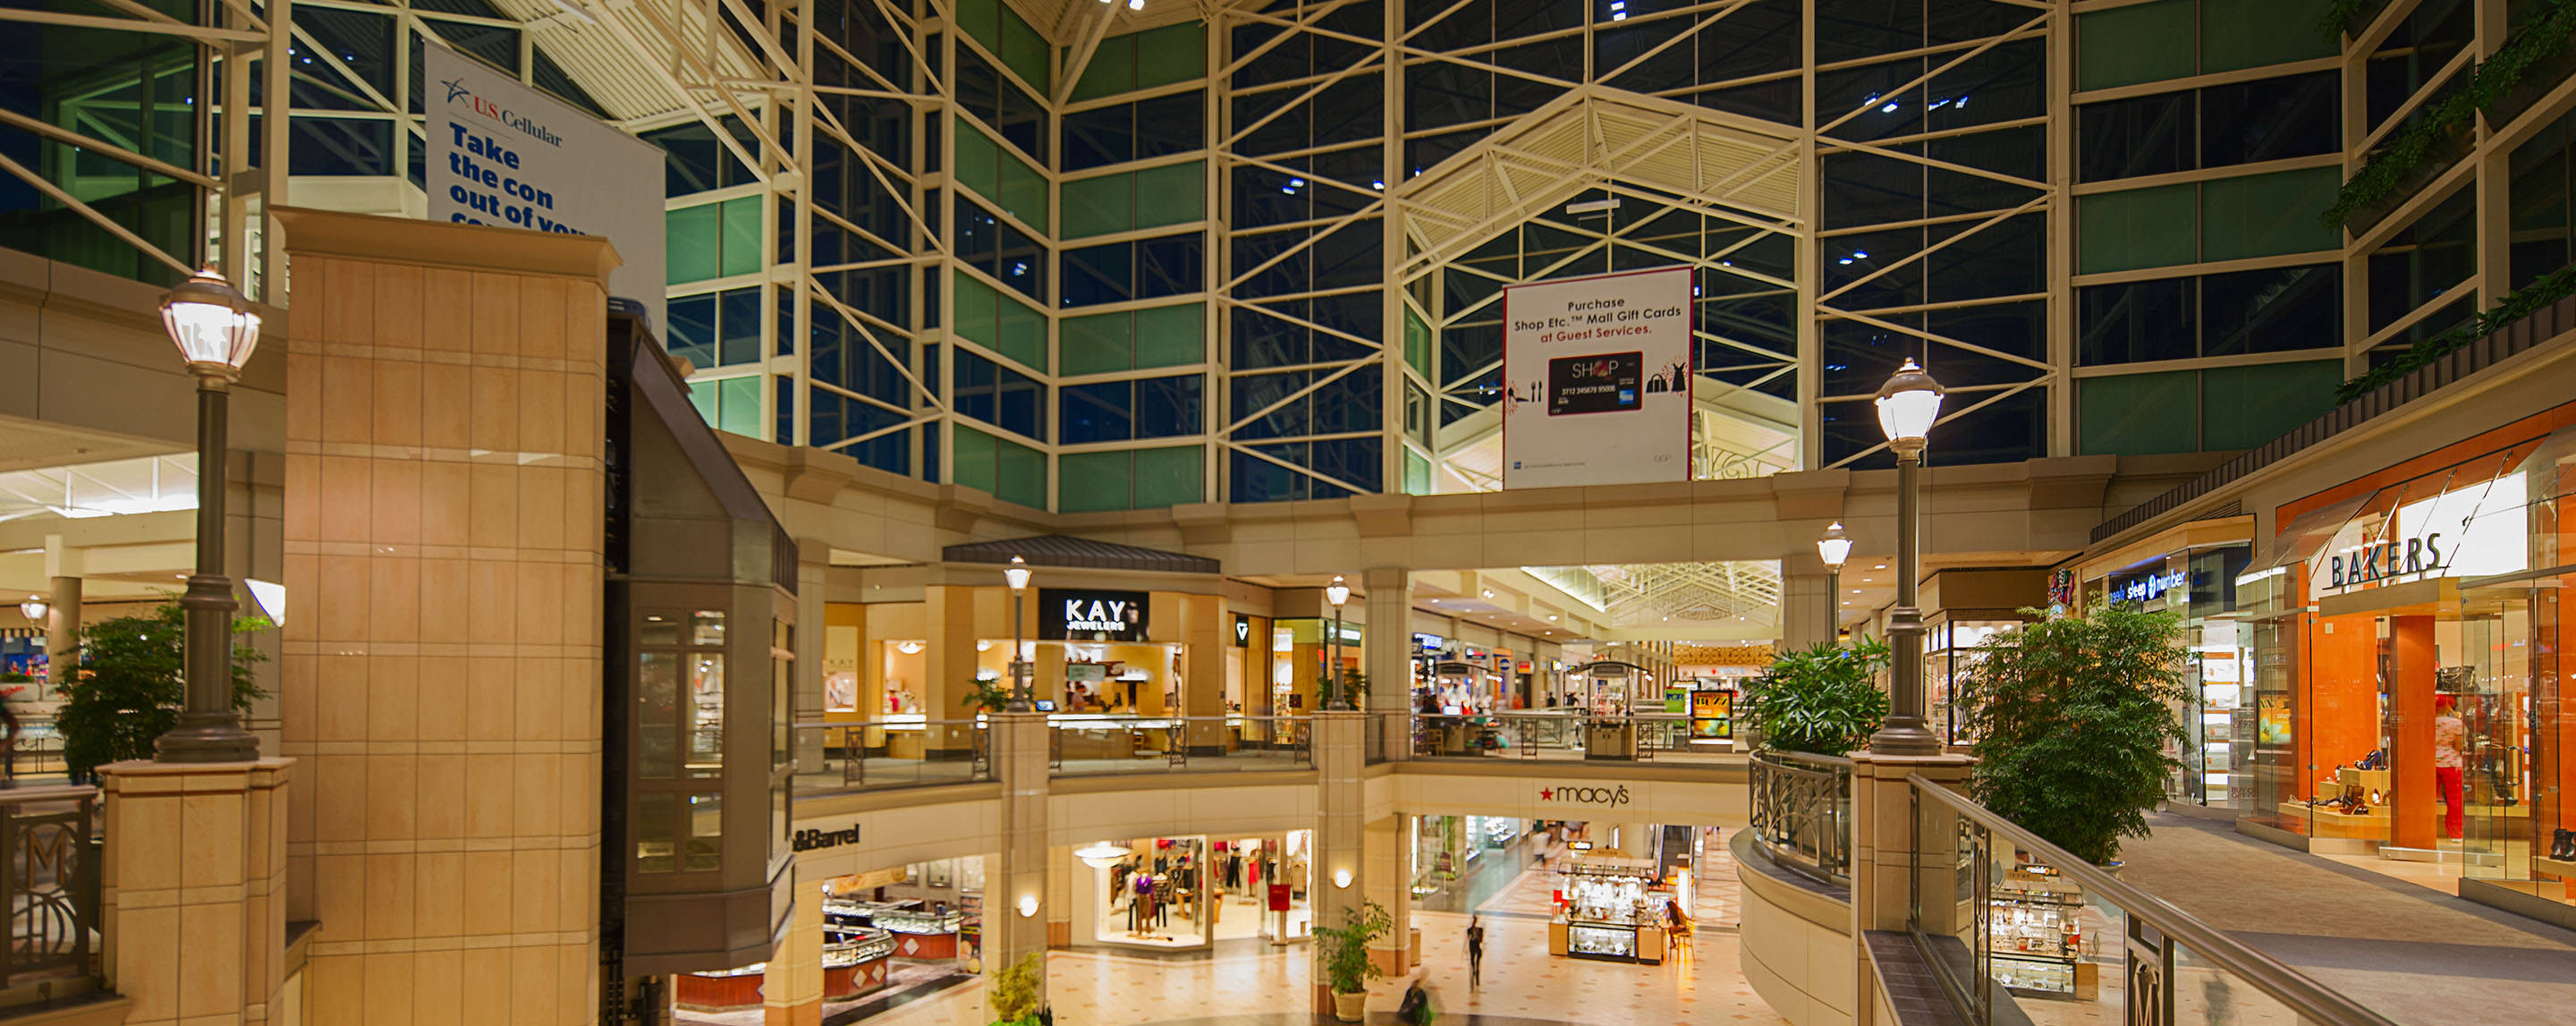 A large open area of a two-story mall with high ceilings and open windows. Kay Jewelers overlooks the bottom floor.